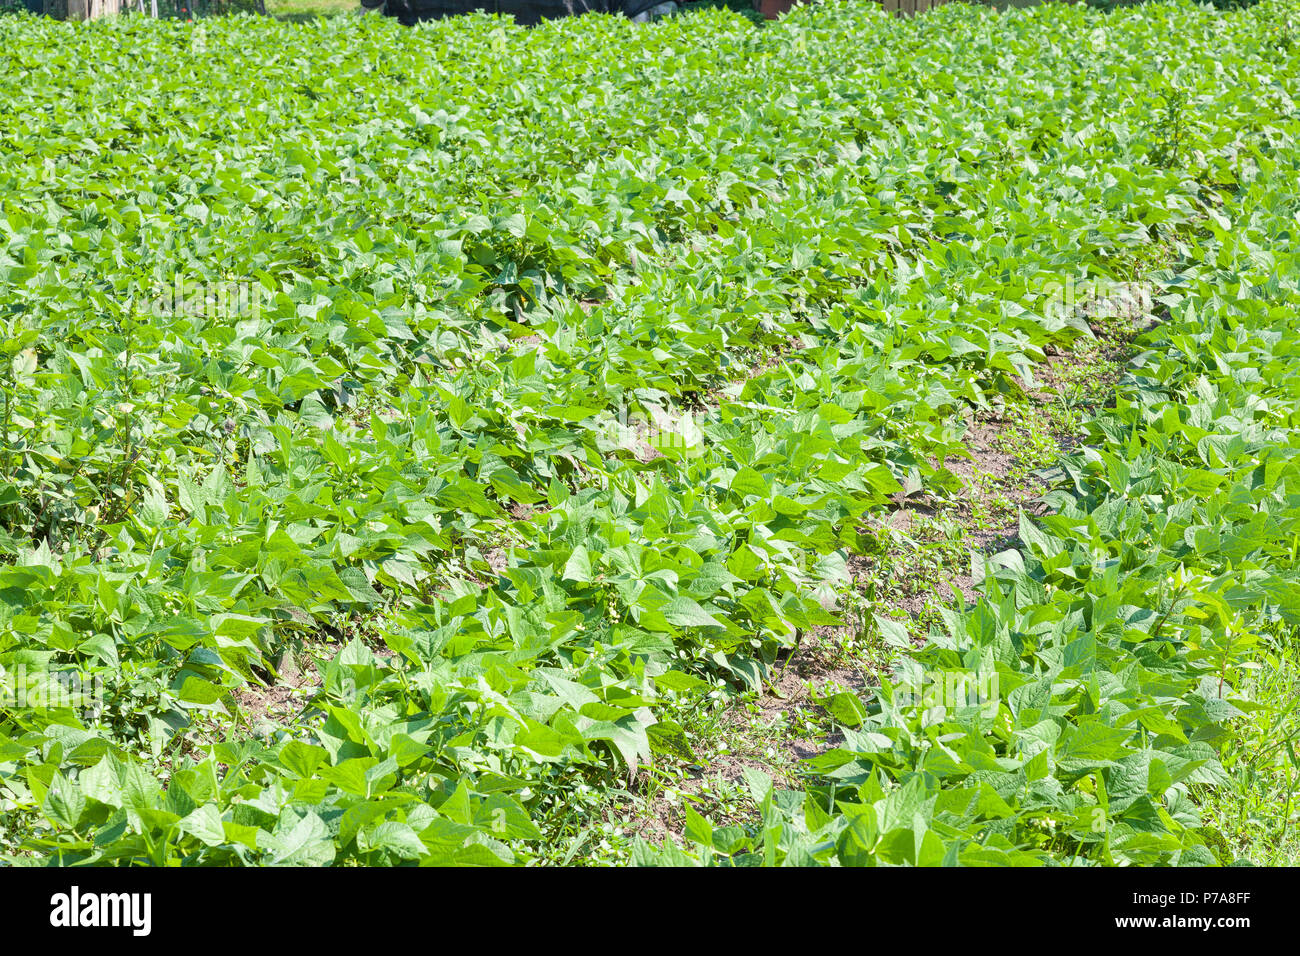 Young green bean plants growing  in an agricultural field in spring. Farm crop, agronomy, cultivation, propagation - Stock Image